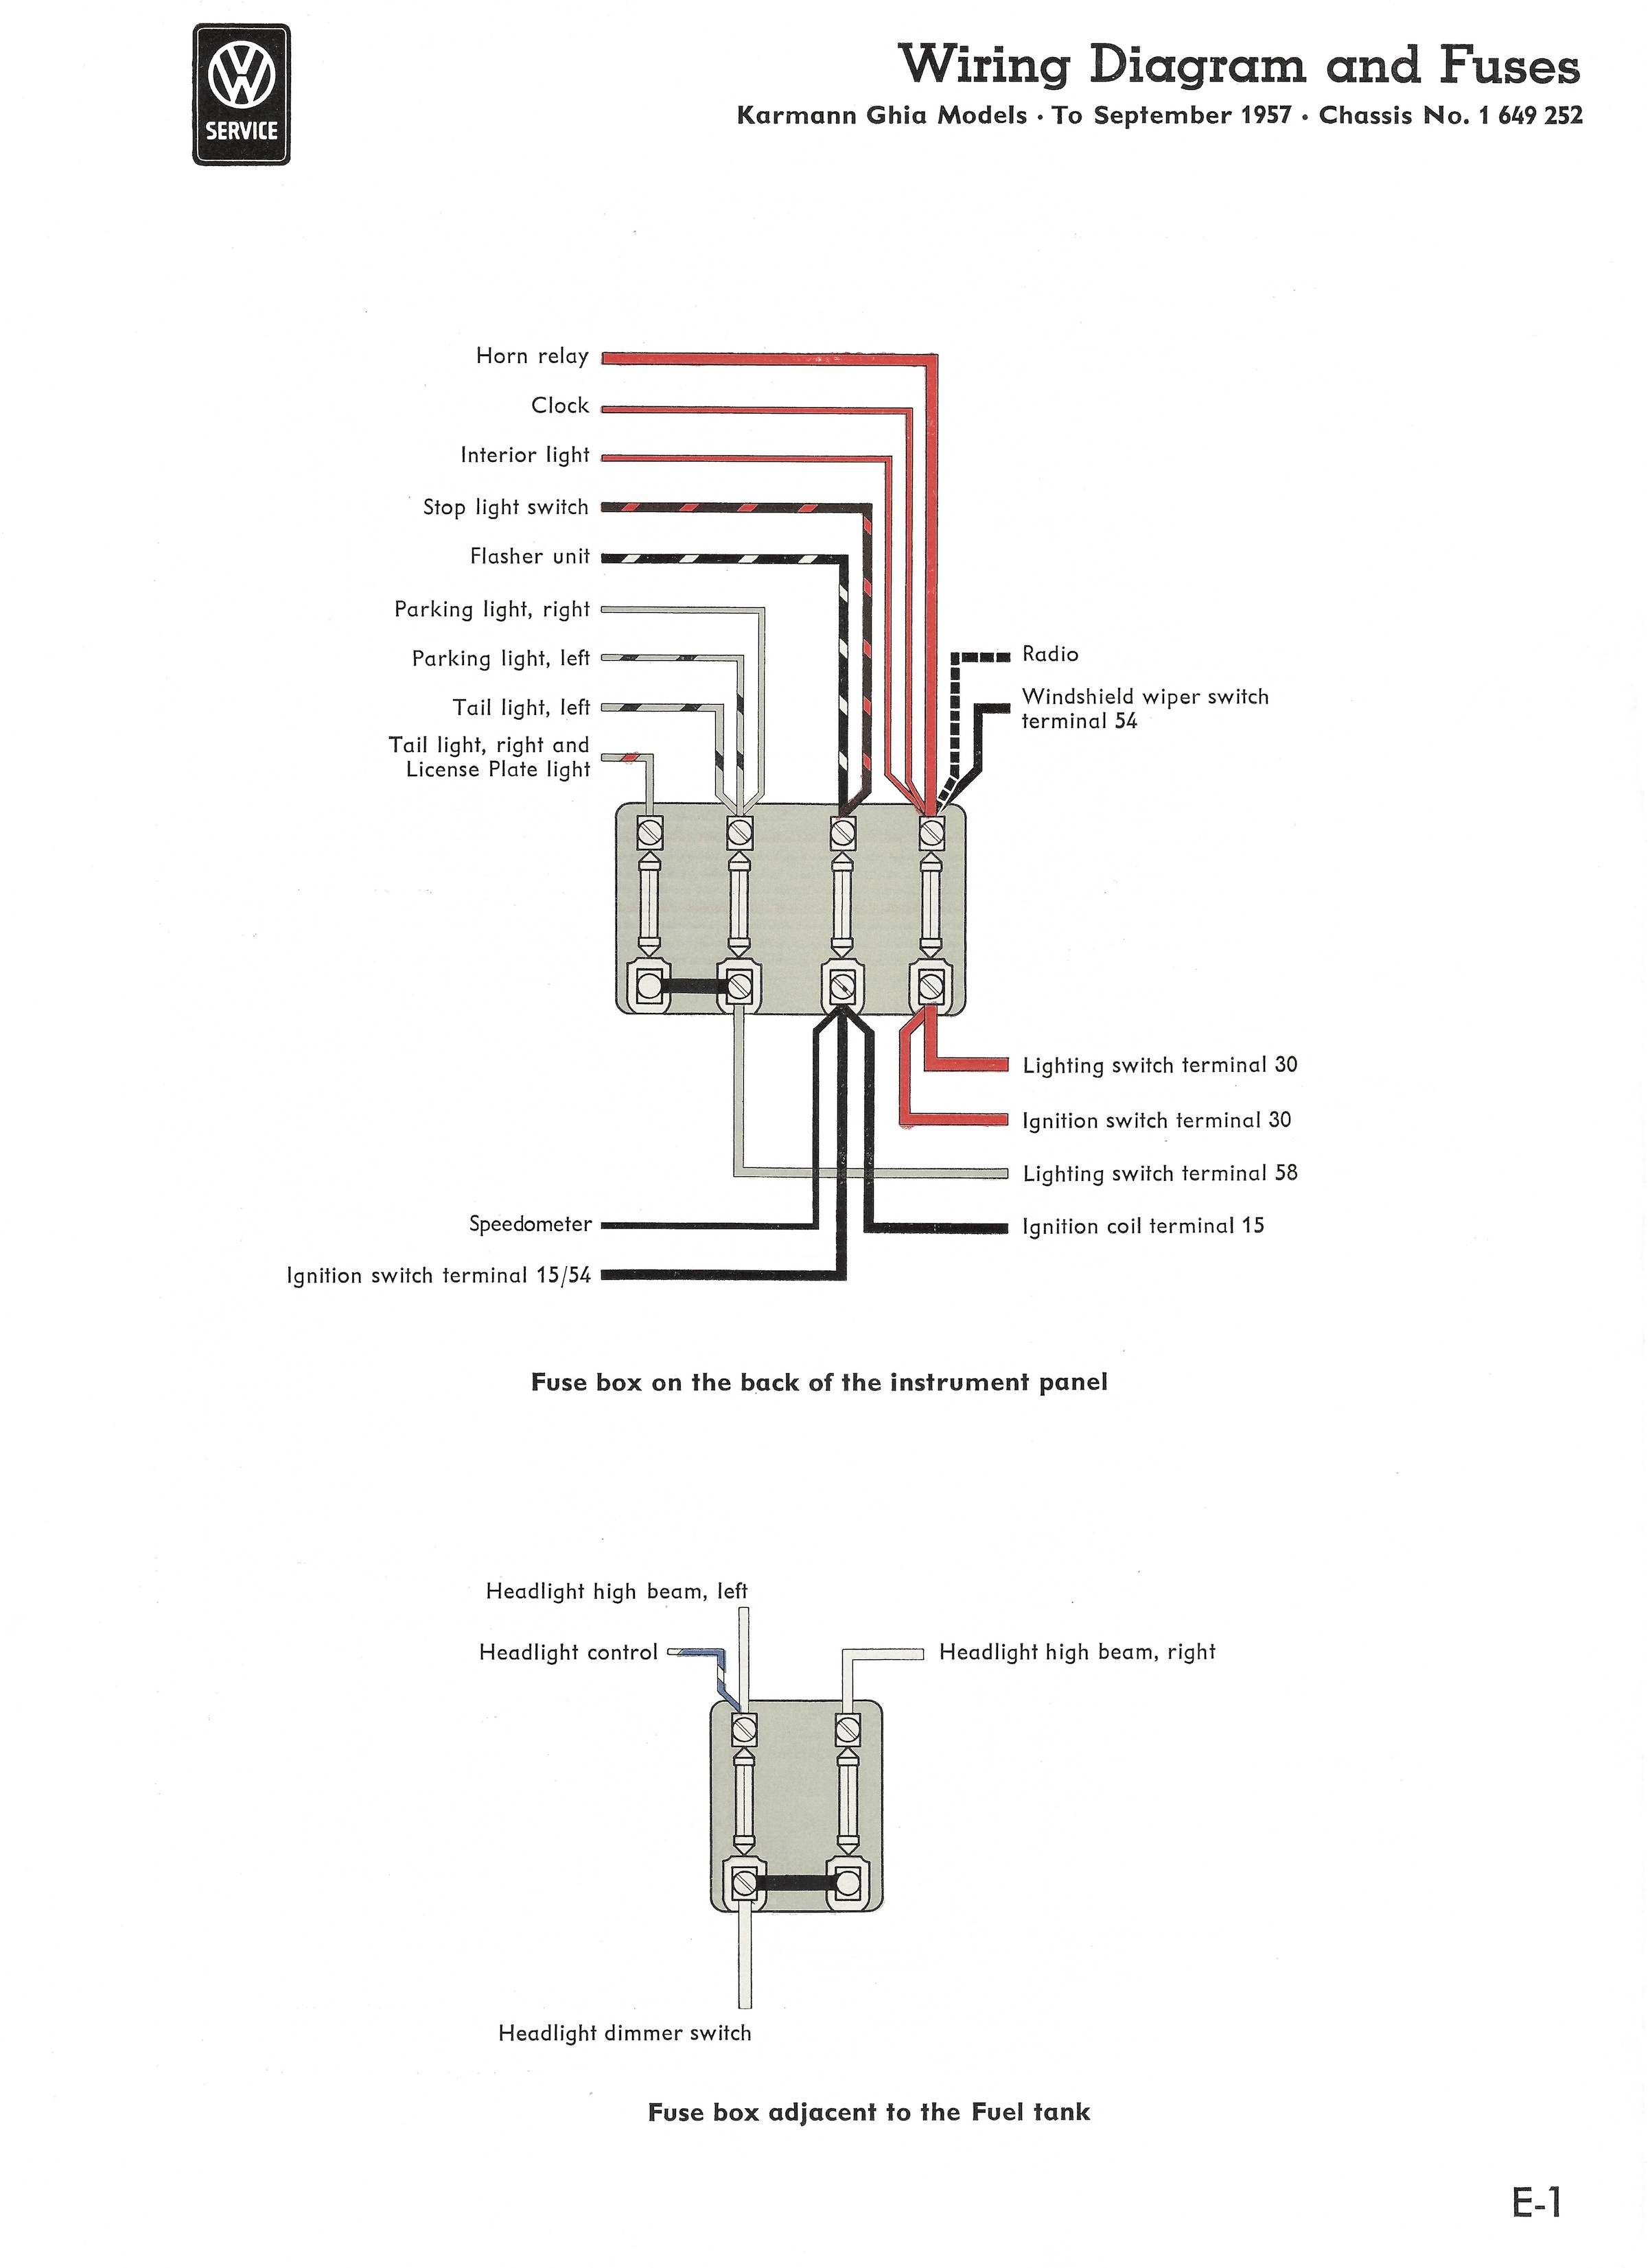 [WRG-1056] 1968 Plymouth Barracuda Wiring Diagram